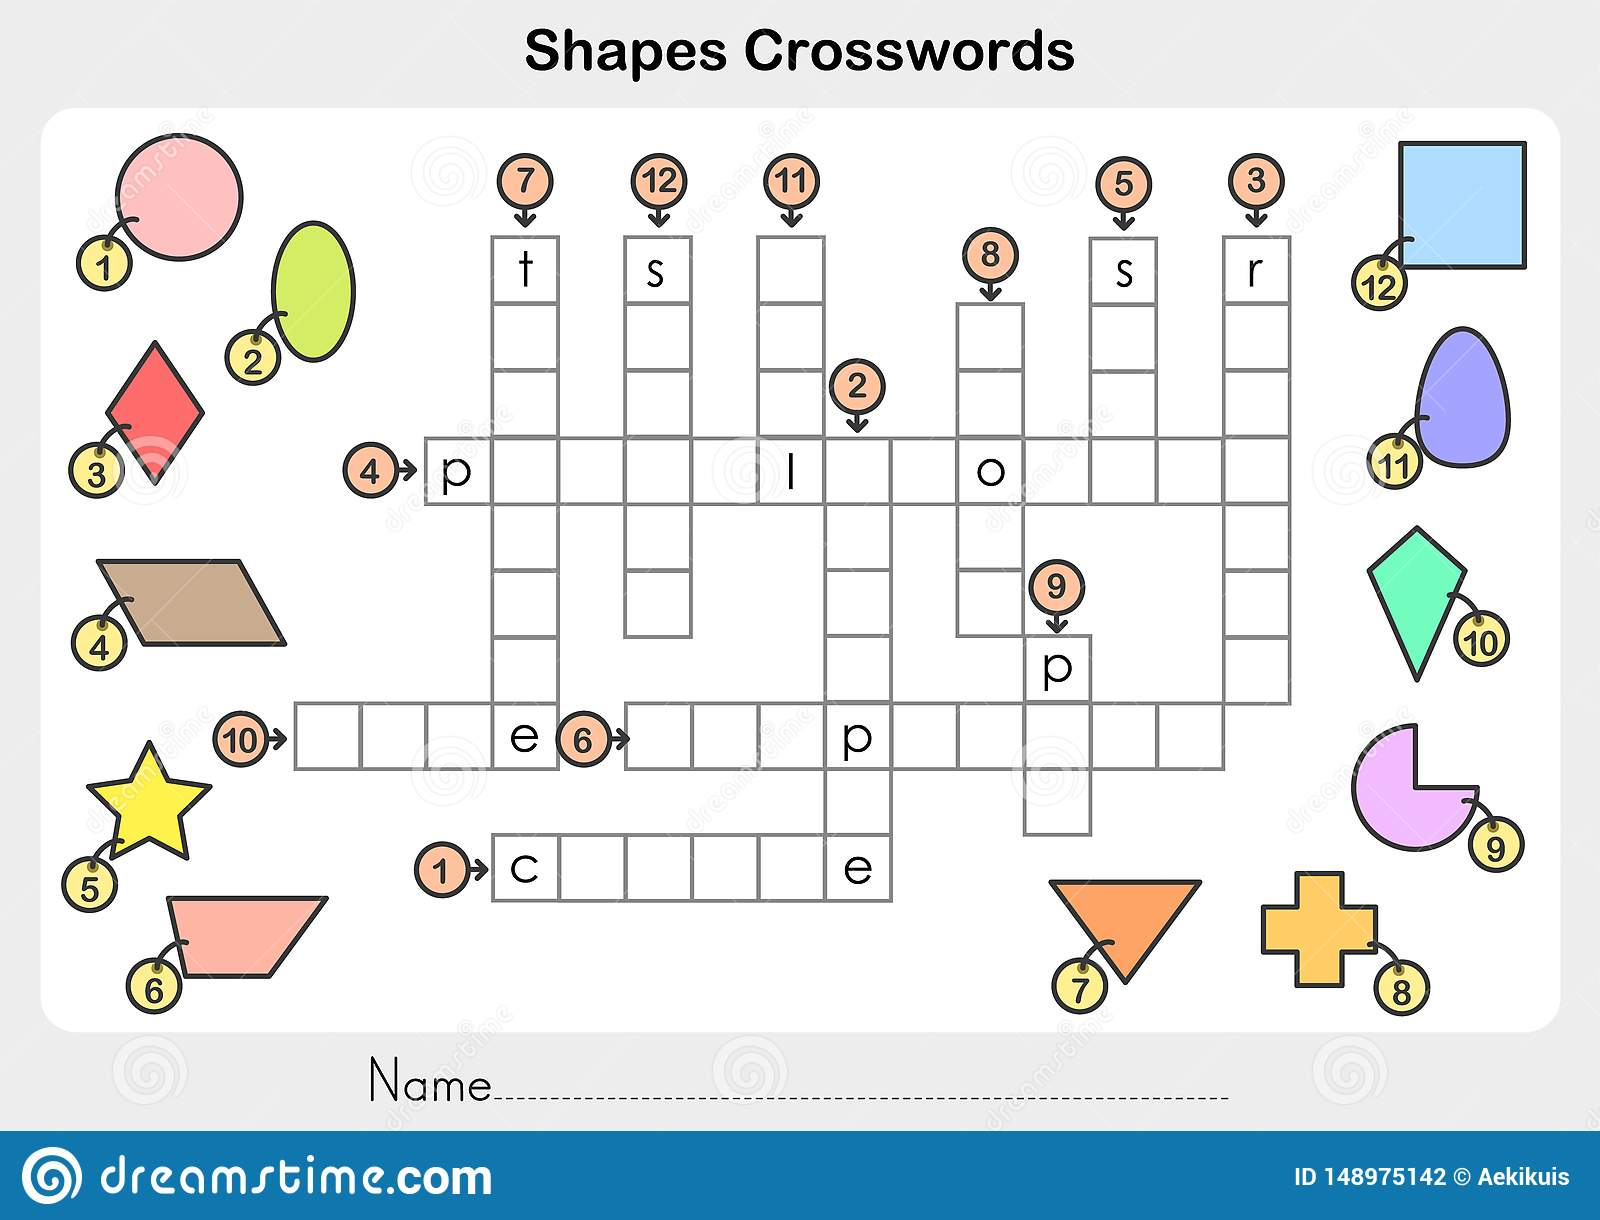 Shapes Crosswords